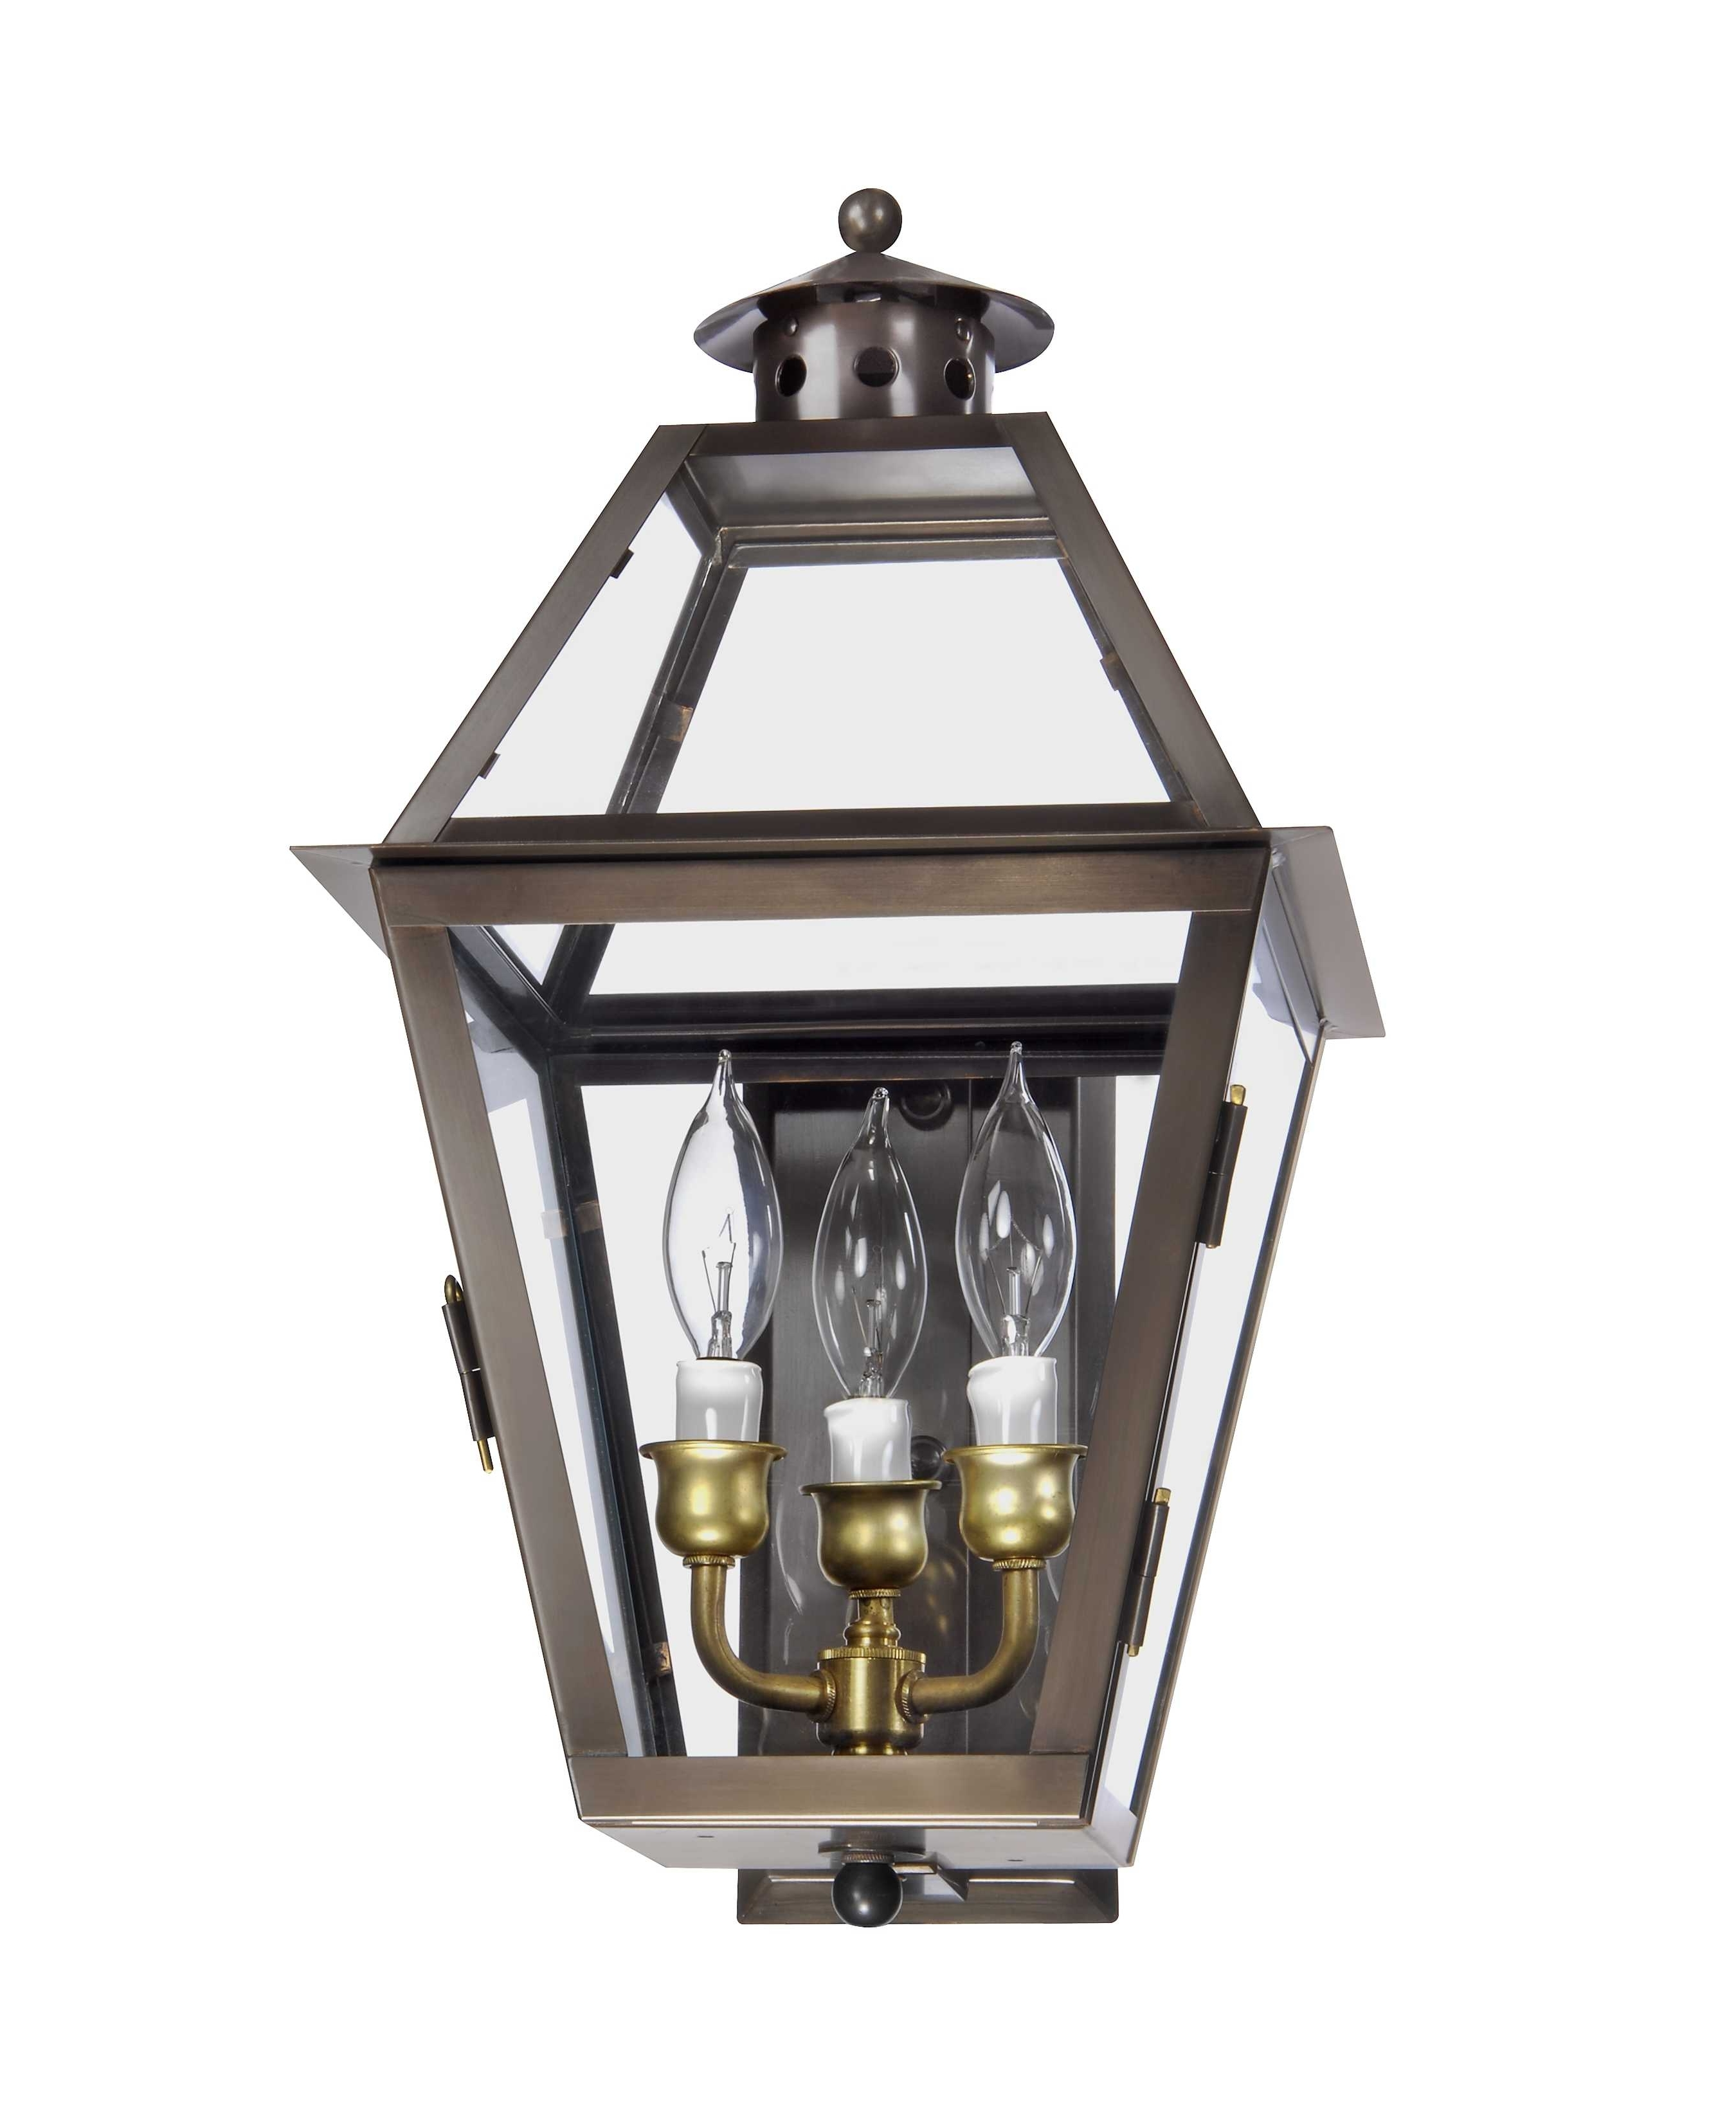 Ch 27 Wall Mount Gas Lantern – Lantern & Scroll With Regard To Outdoor Electric Lanterns (Gallery 2 of 20)